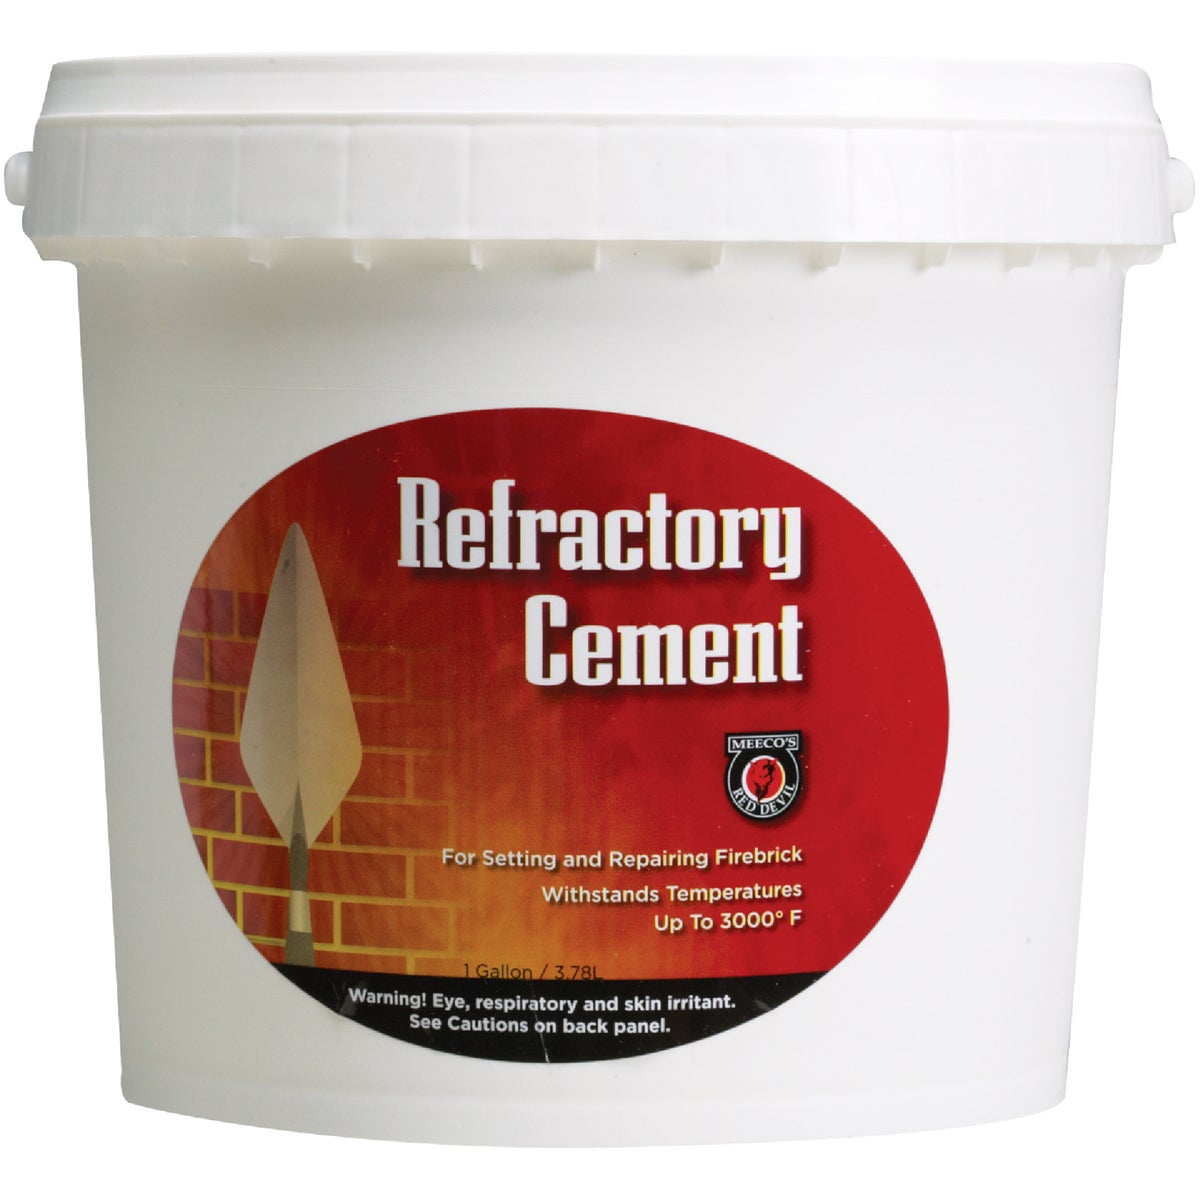 GAL REFRACTORY CEMENT